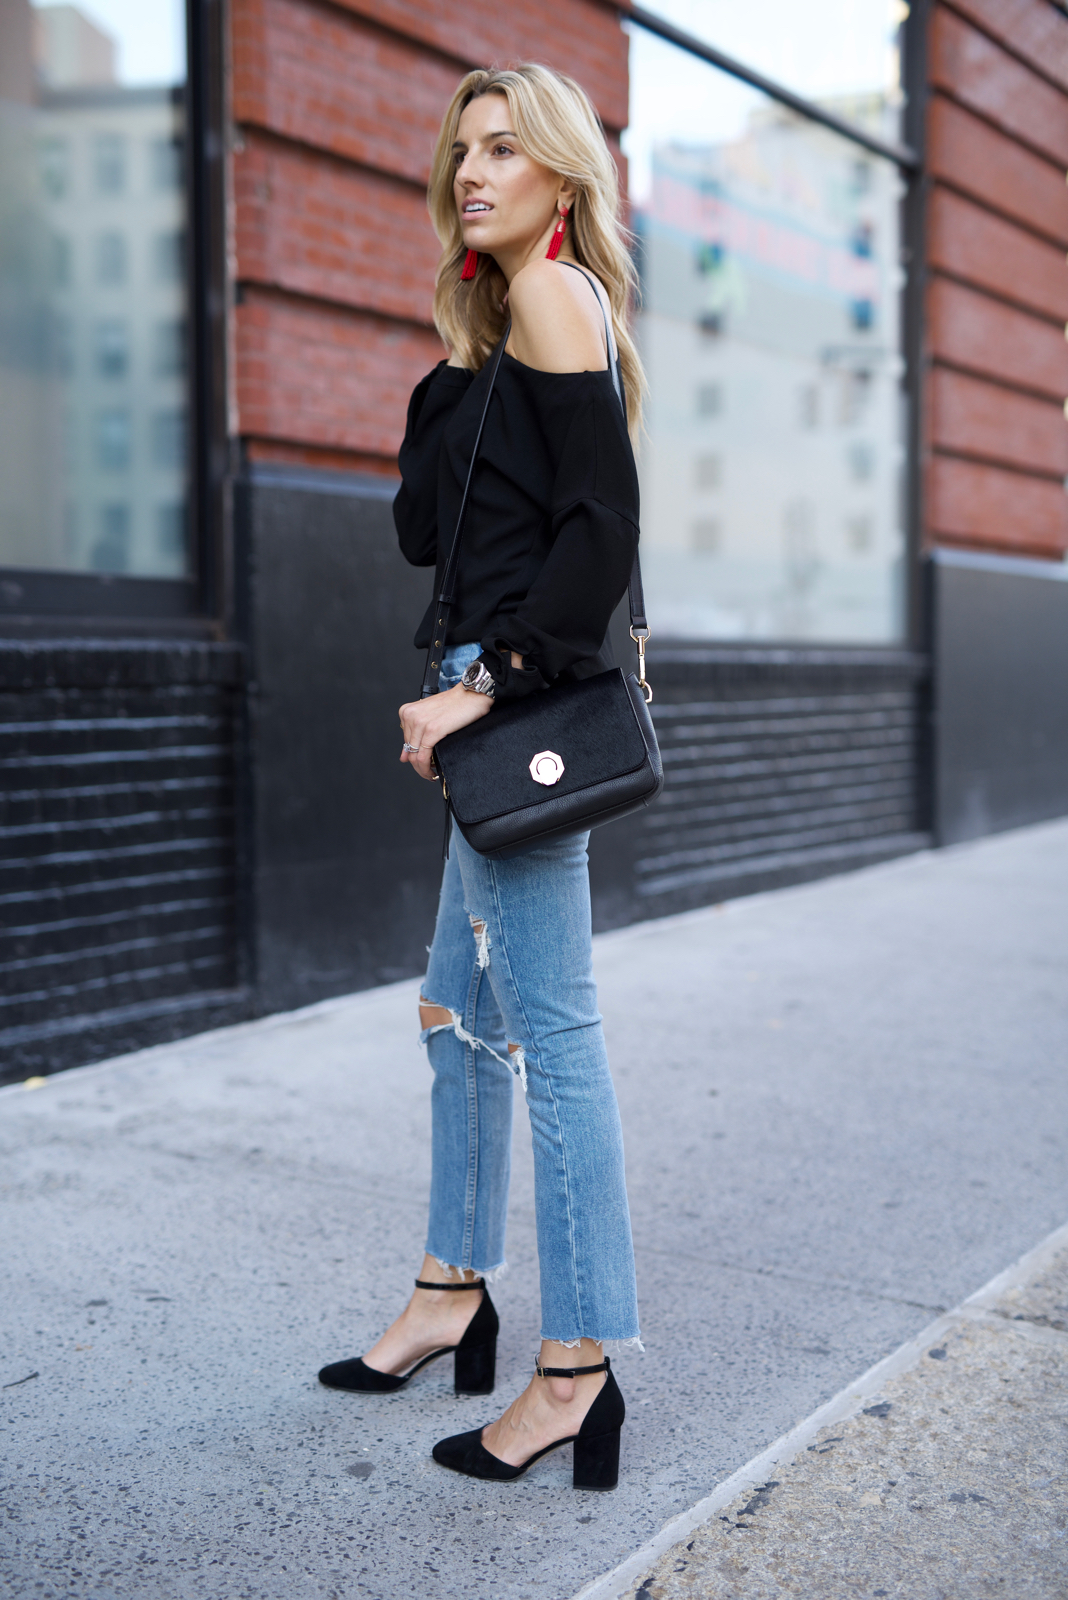 louise et cie, ripped jeans, off-the-shoulder top